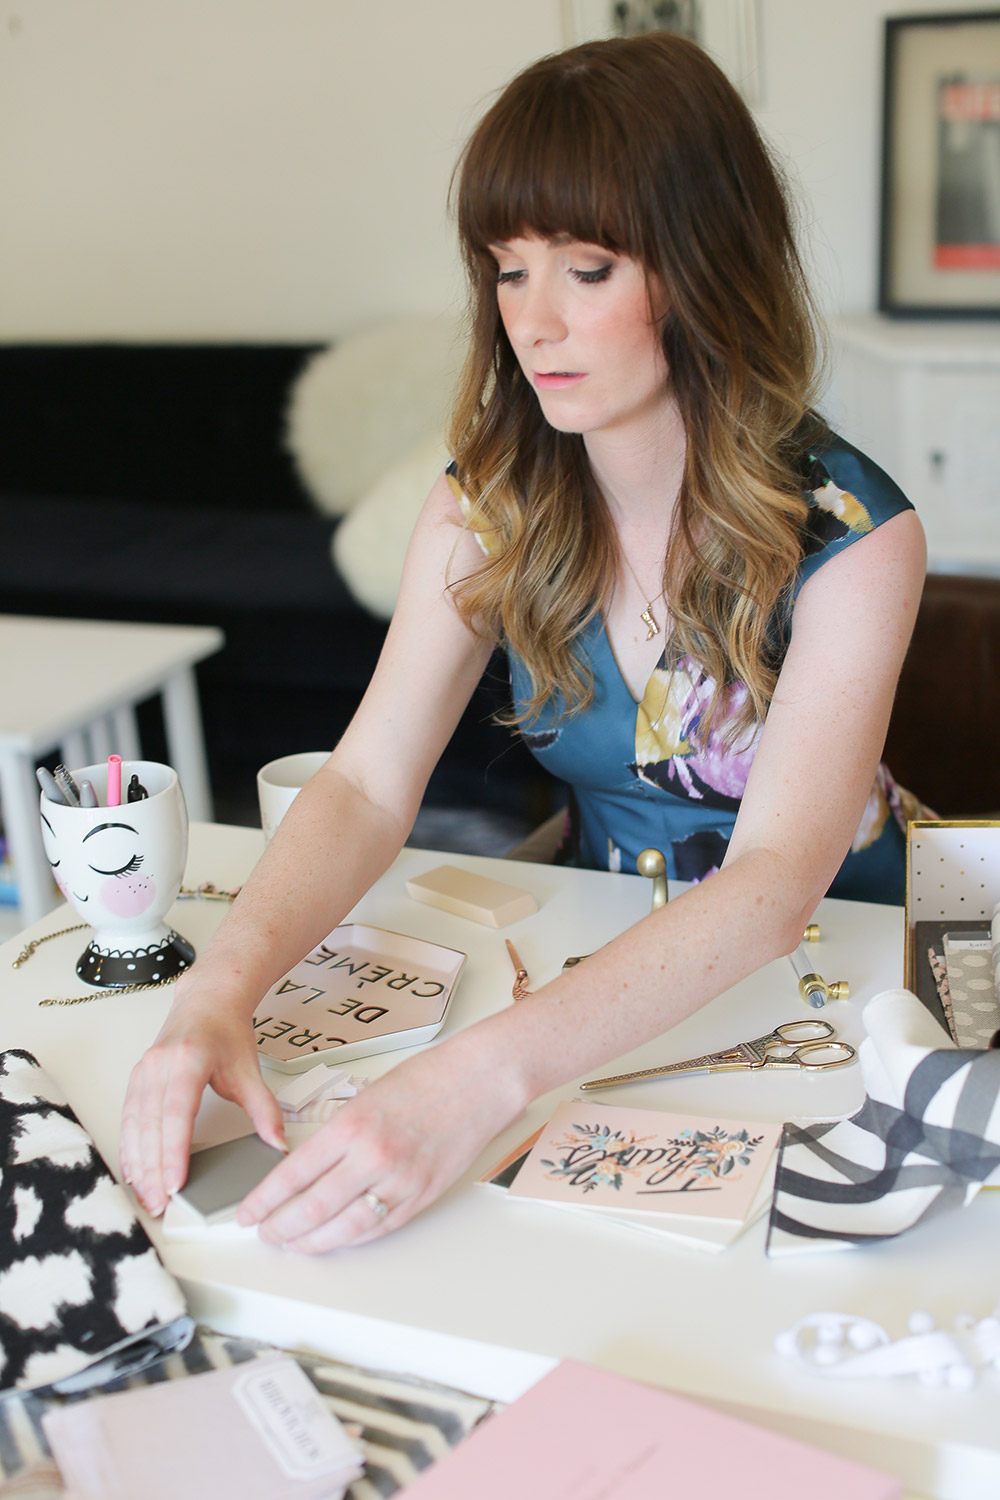 Online Interior Design Services by Stephanie Owens at Paper Moon Interiors